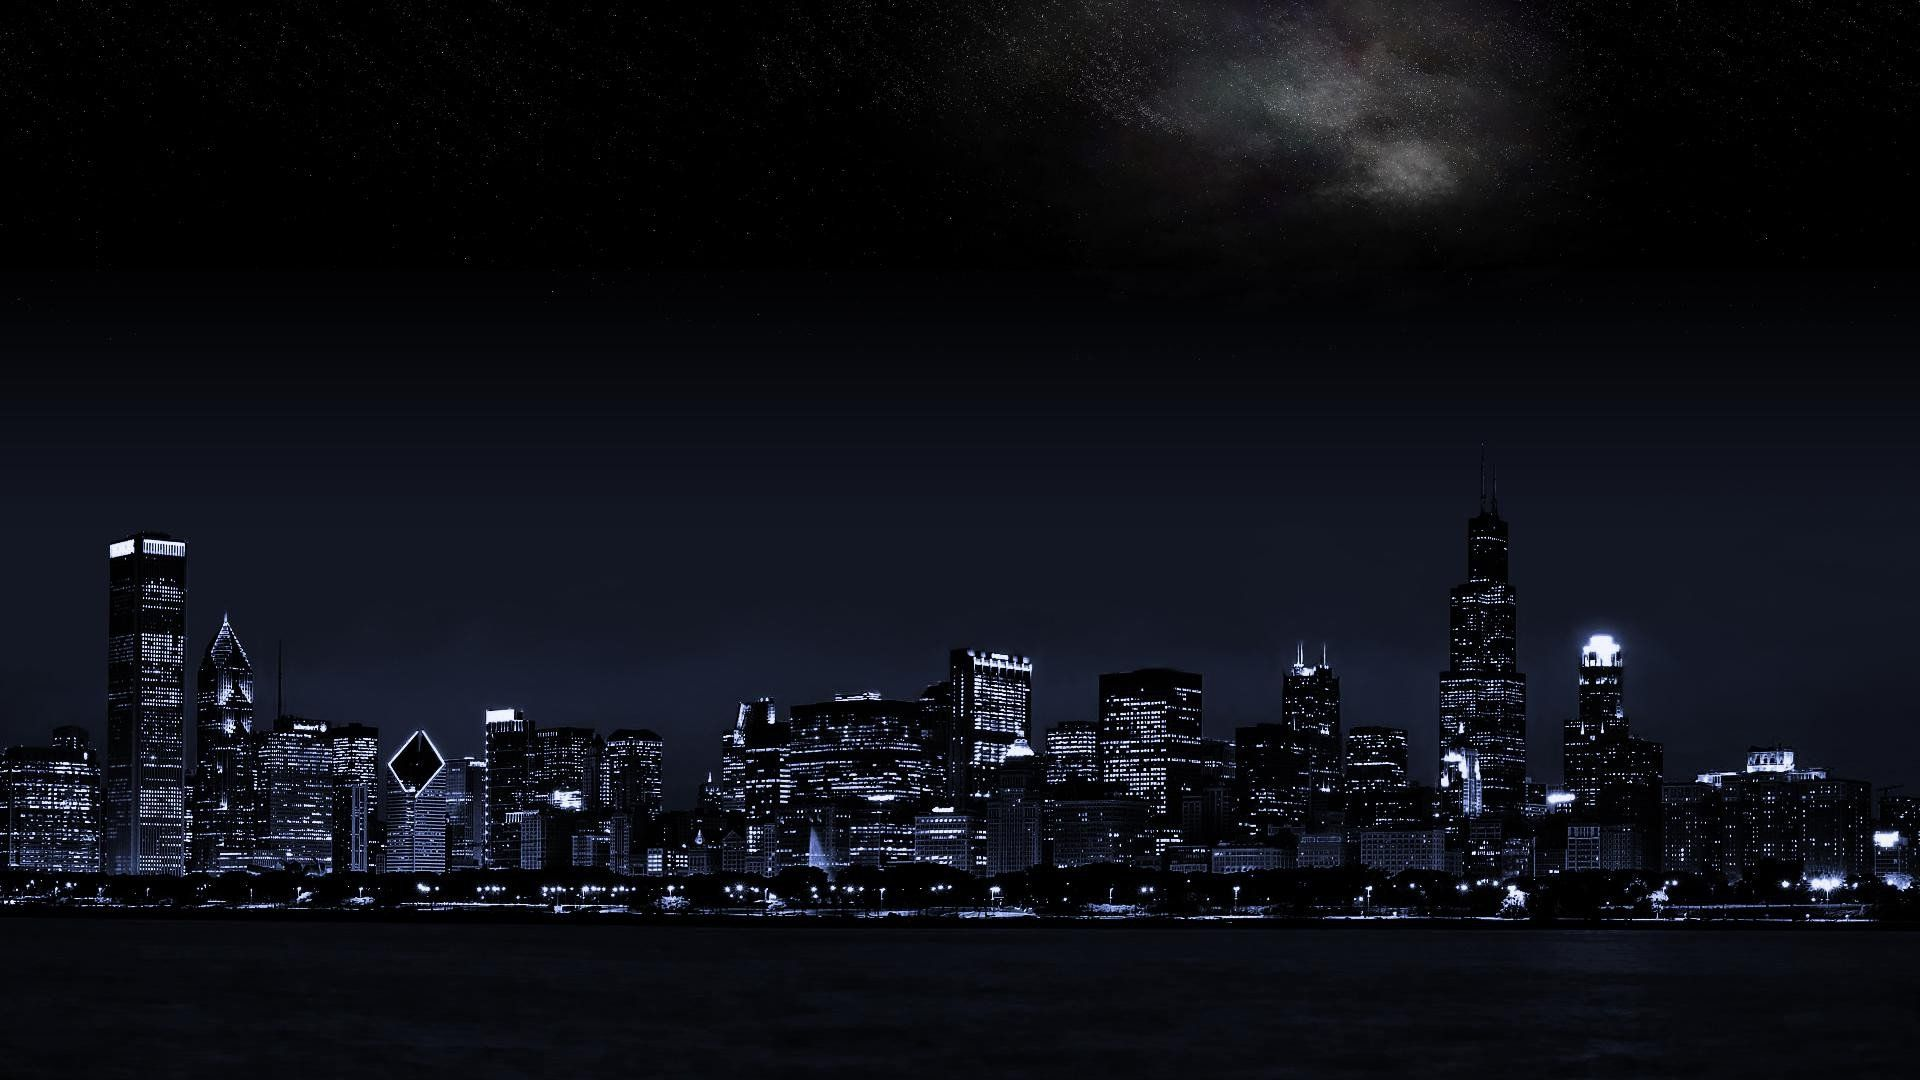 Night City Wallpaper Free | Landscape Wallpapers ...